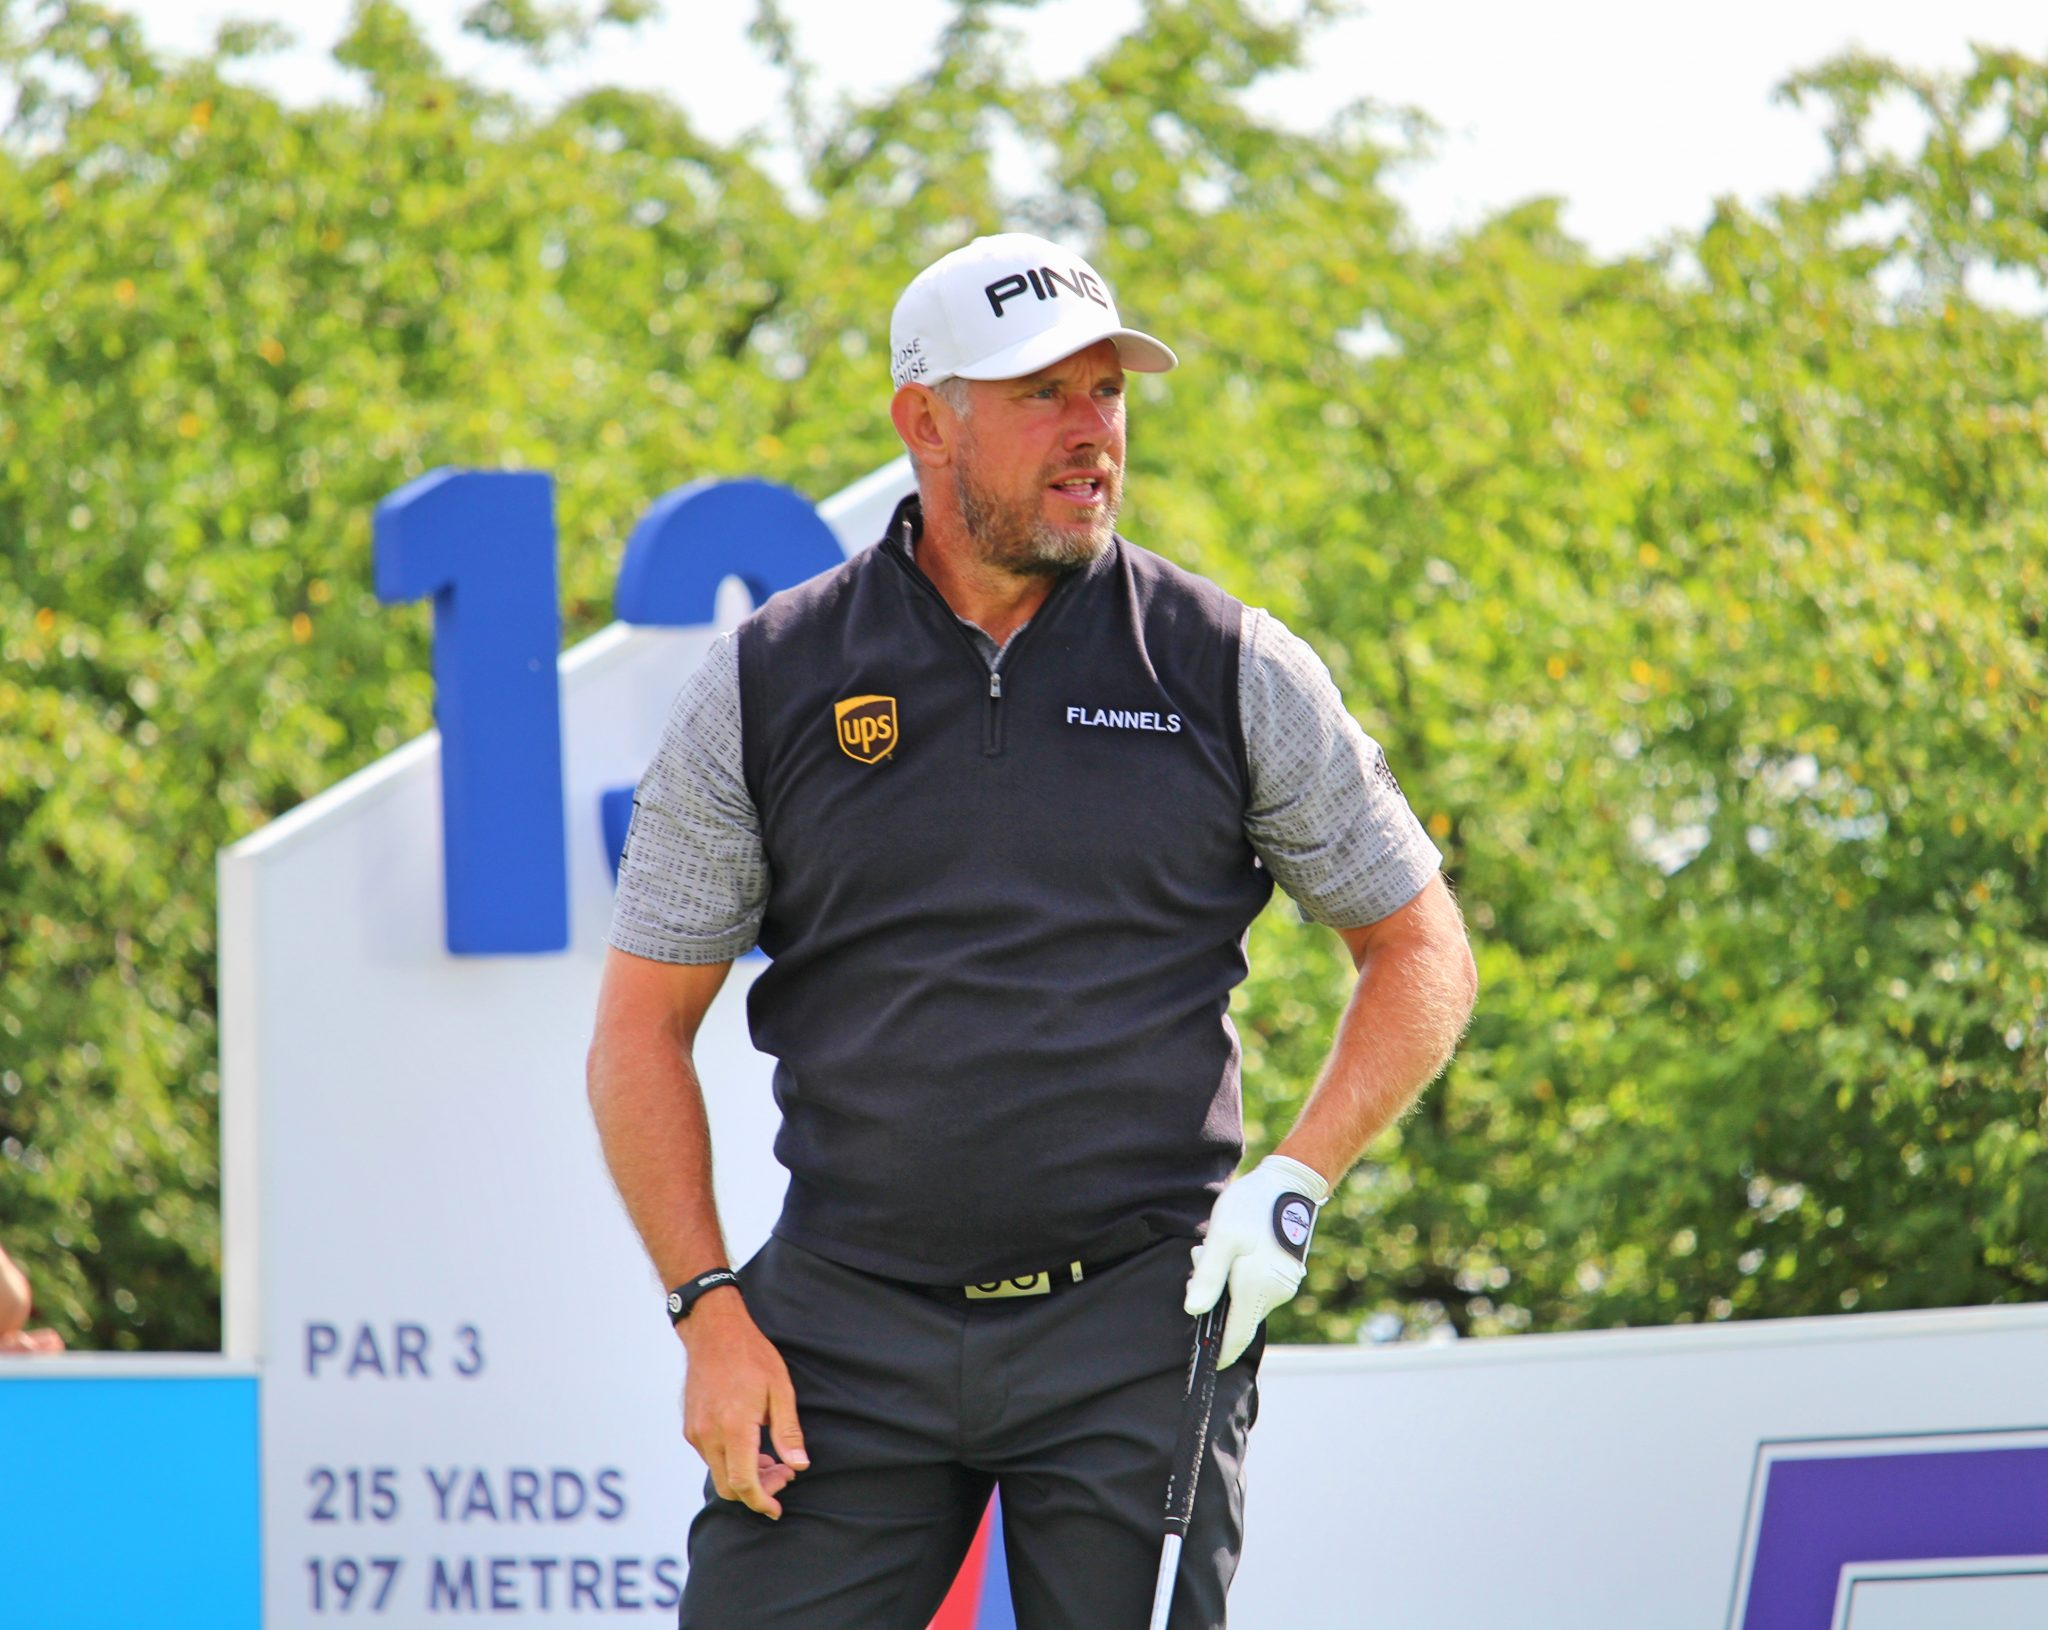 Lee Westwood on the 13th tee